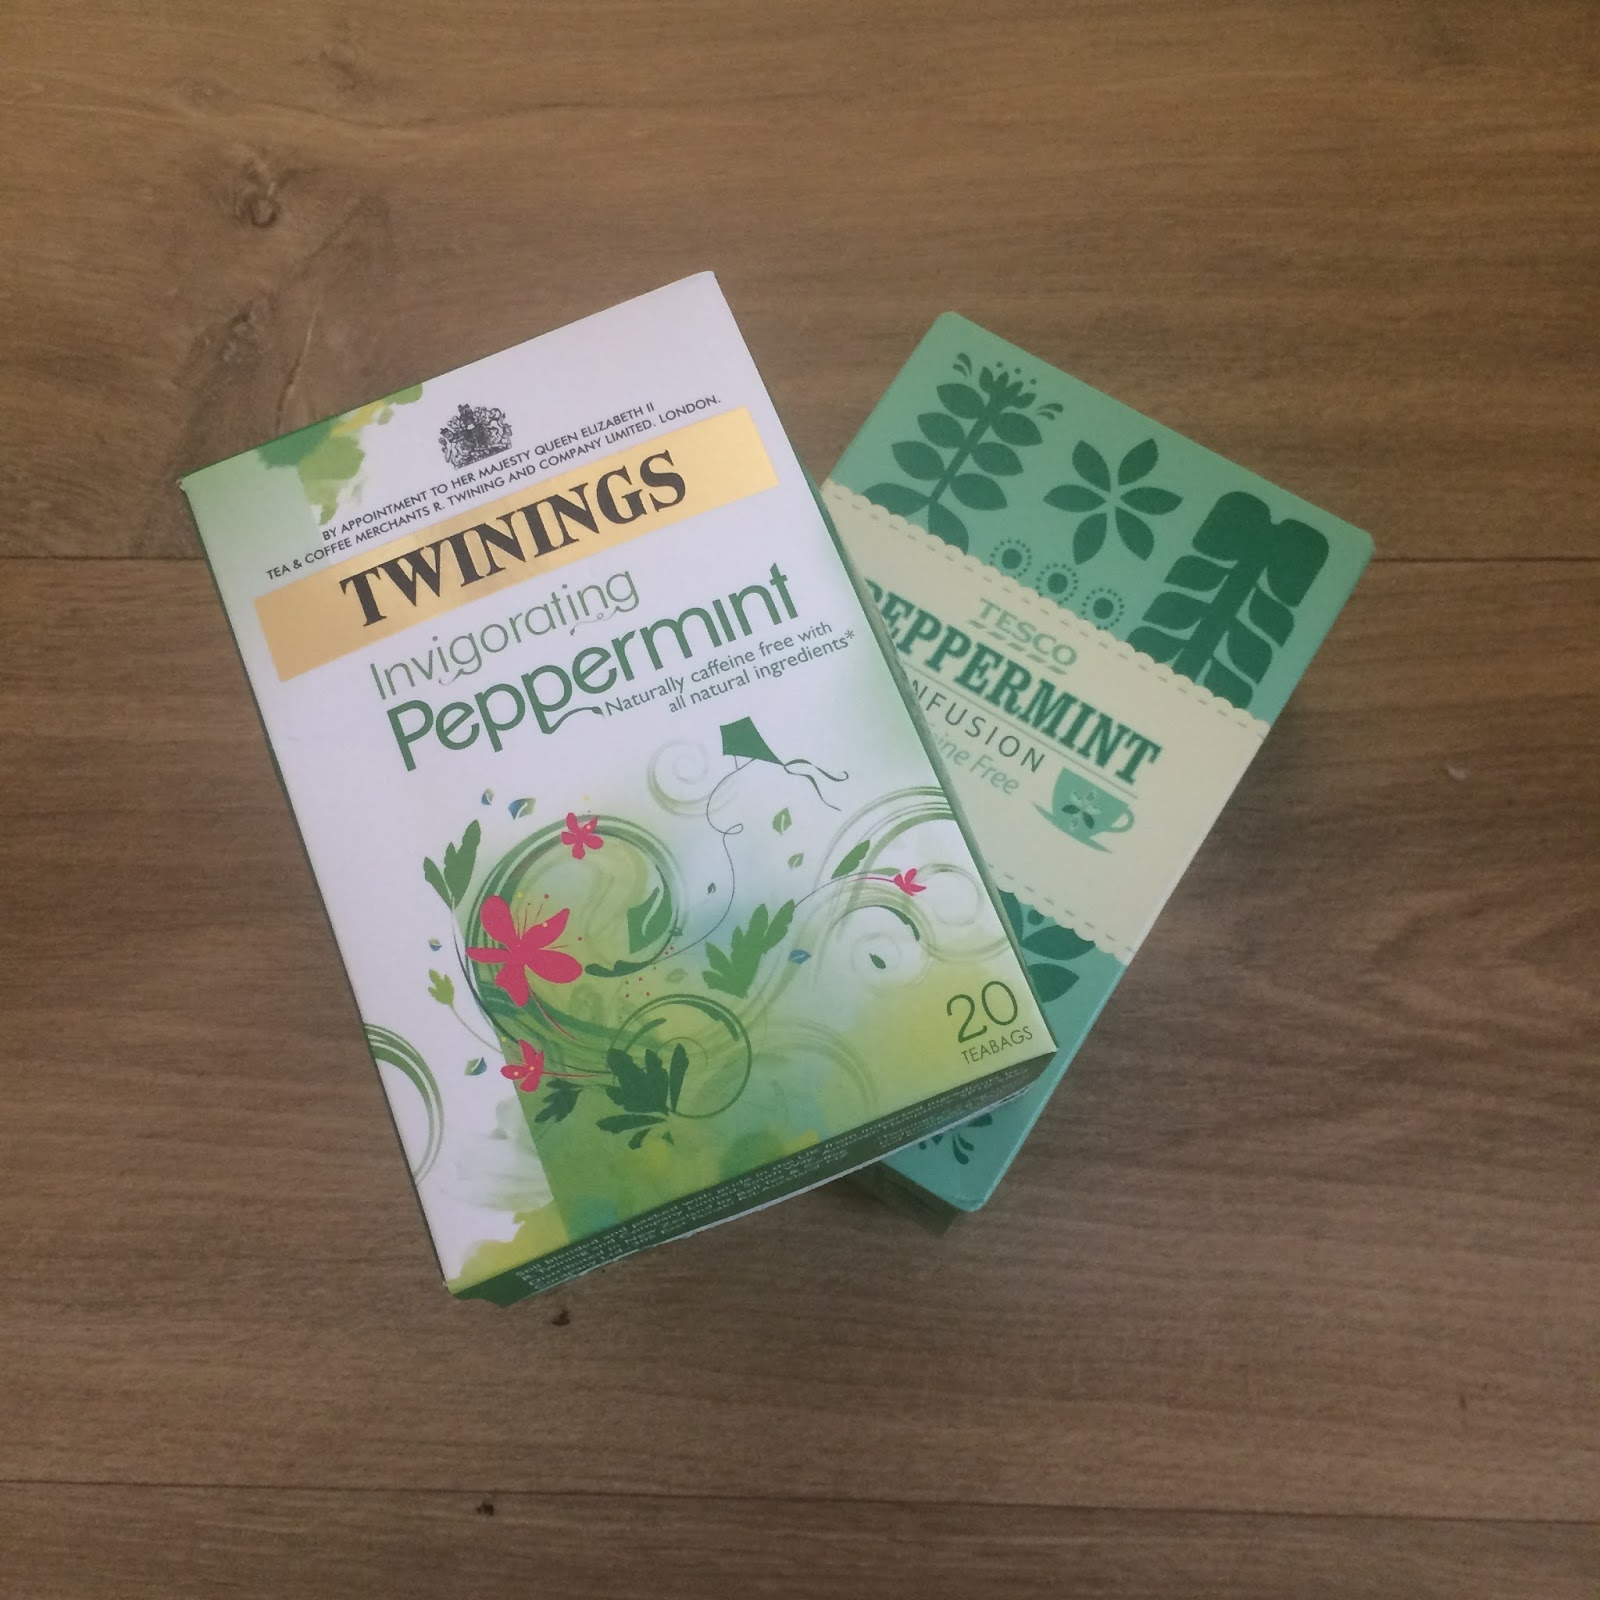 peppermint tea, twinings tescos lifestyle blogger